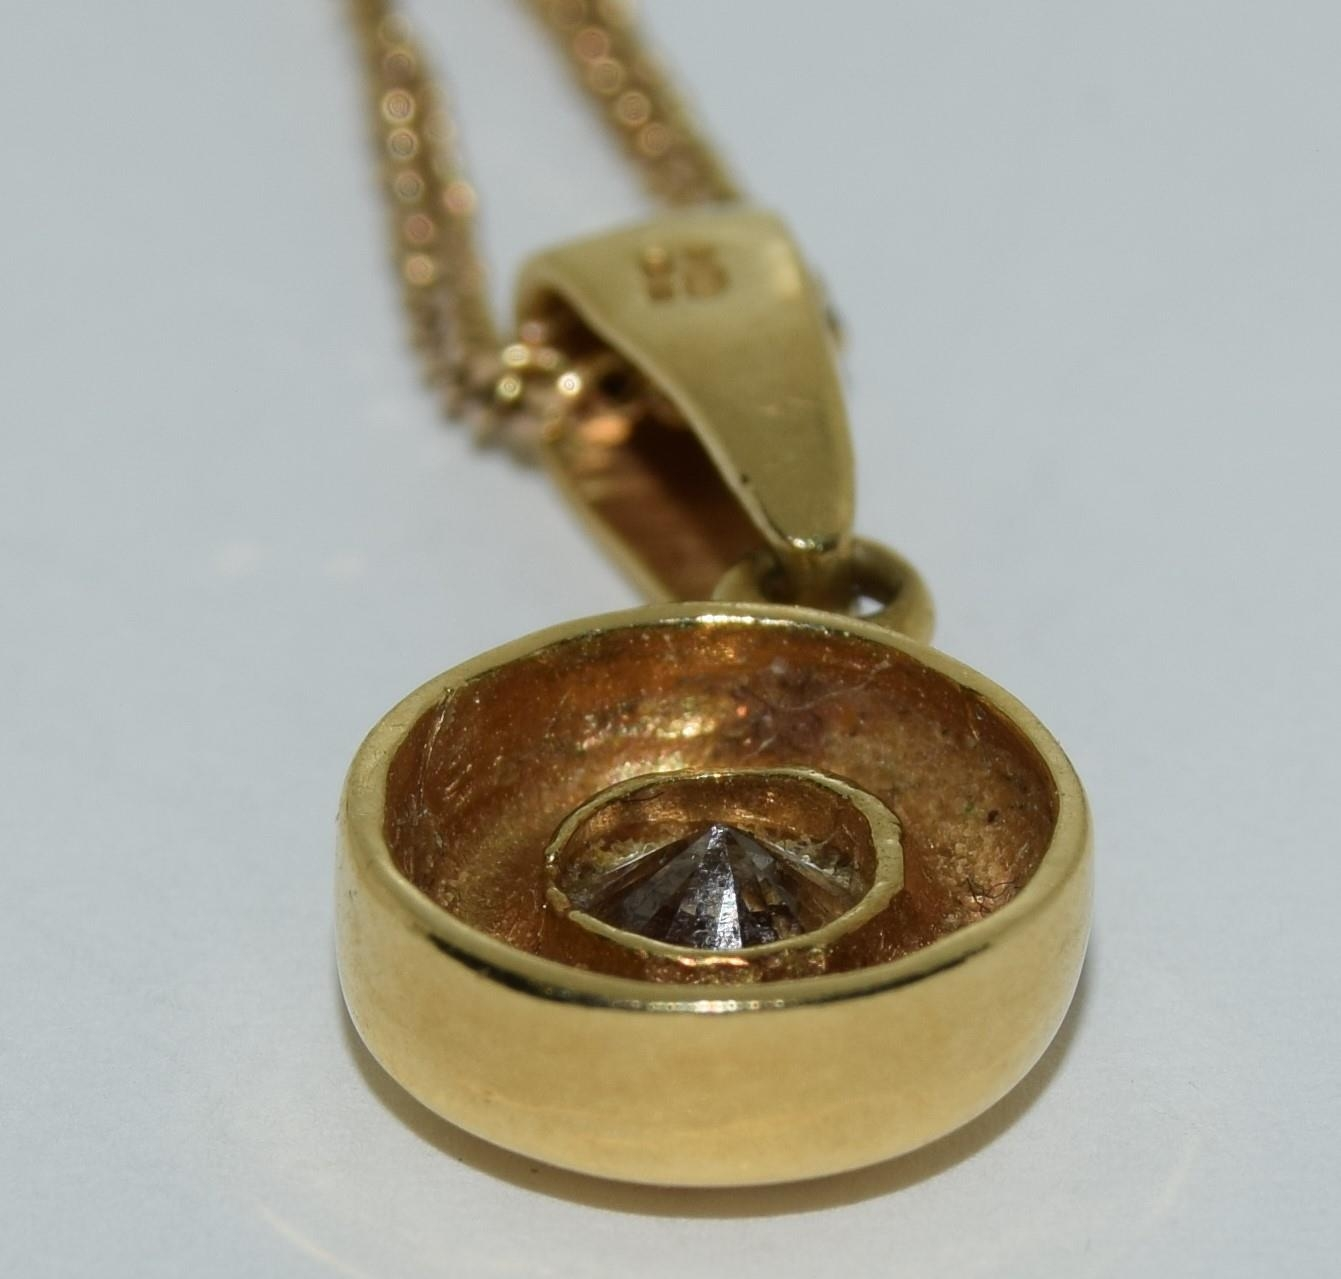 18ct gold diamond pendant of approx 0.6ct on a 9ct gold chain - Image 3 of 4